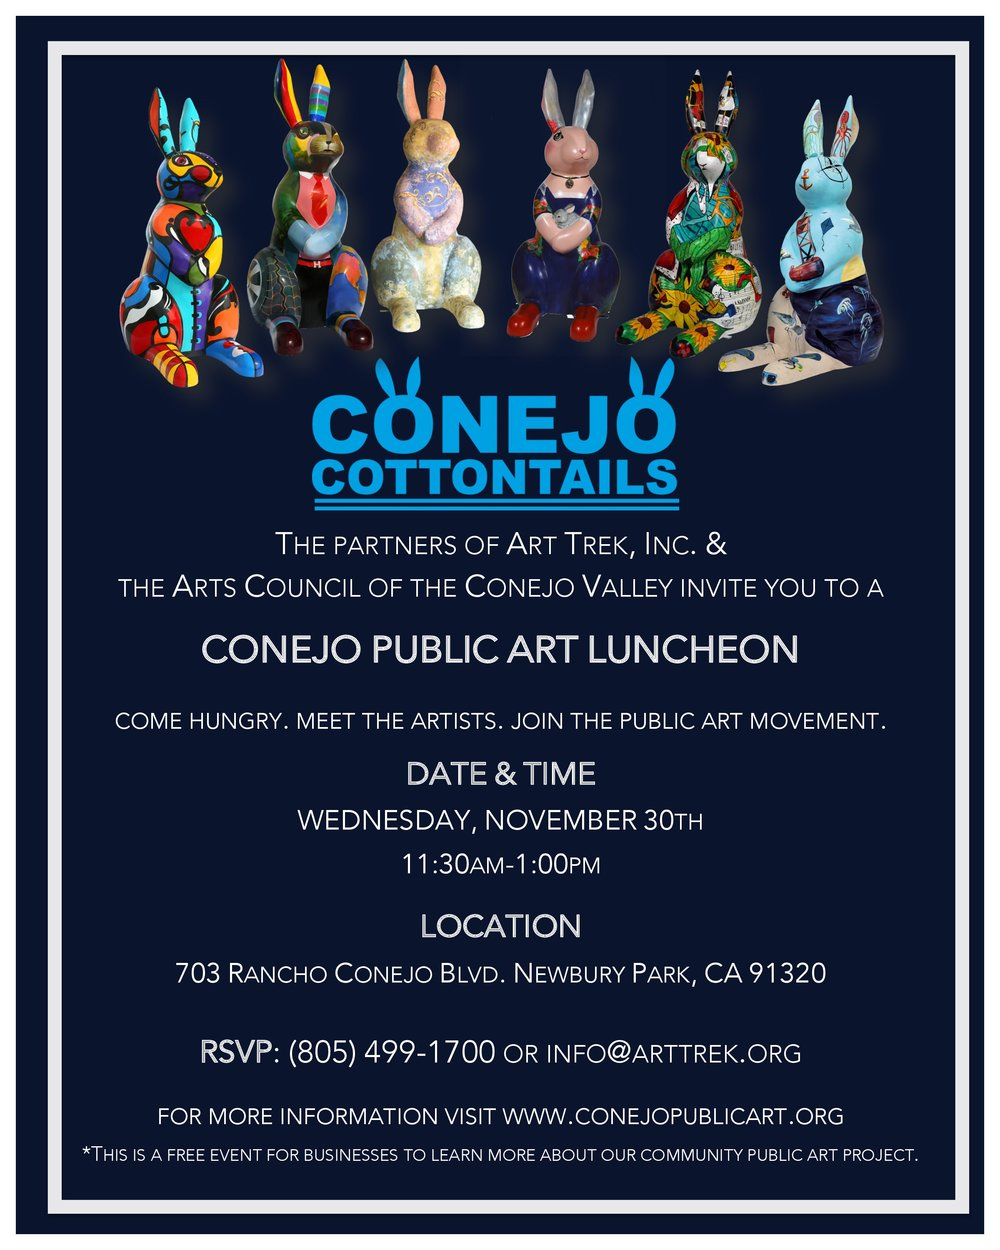 Conejo Cottontail Invitation.jpg